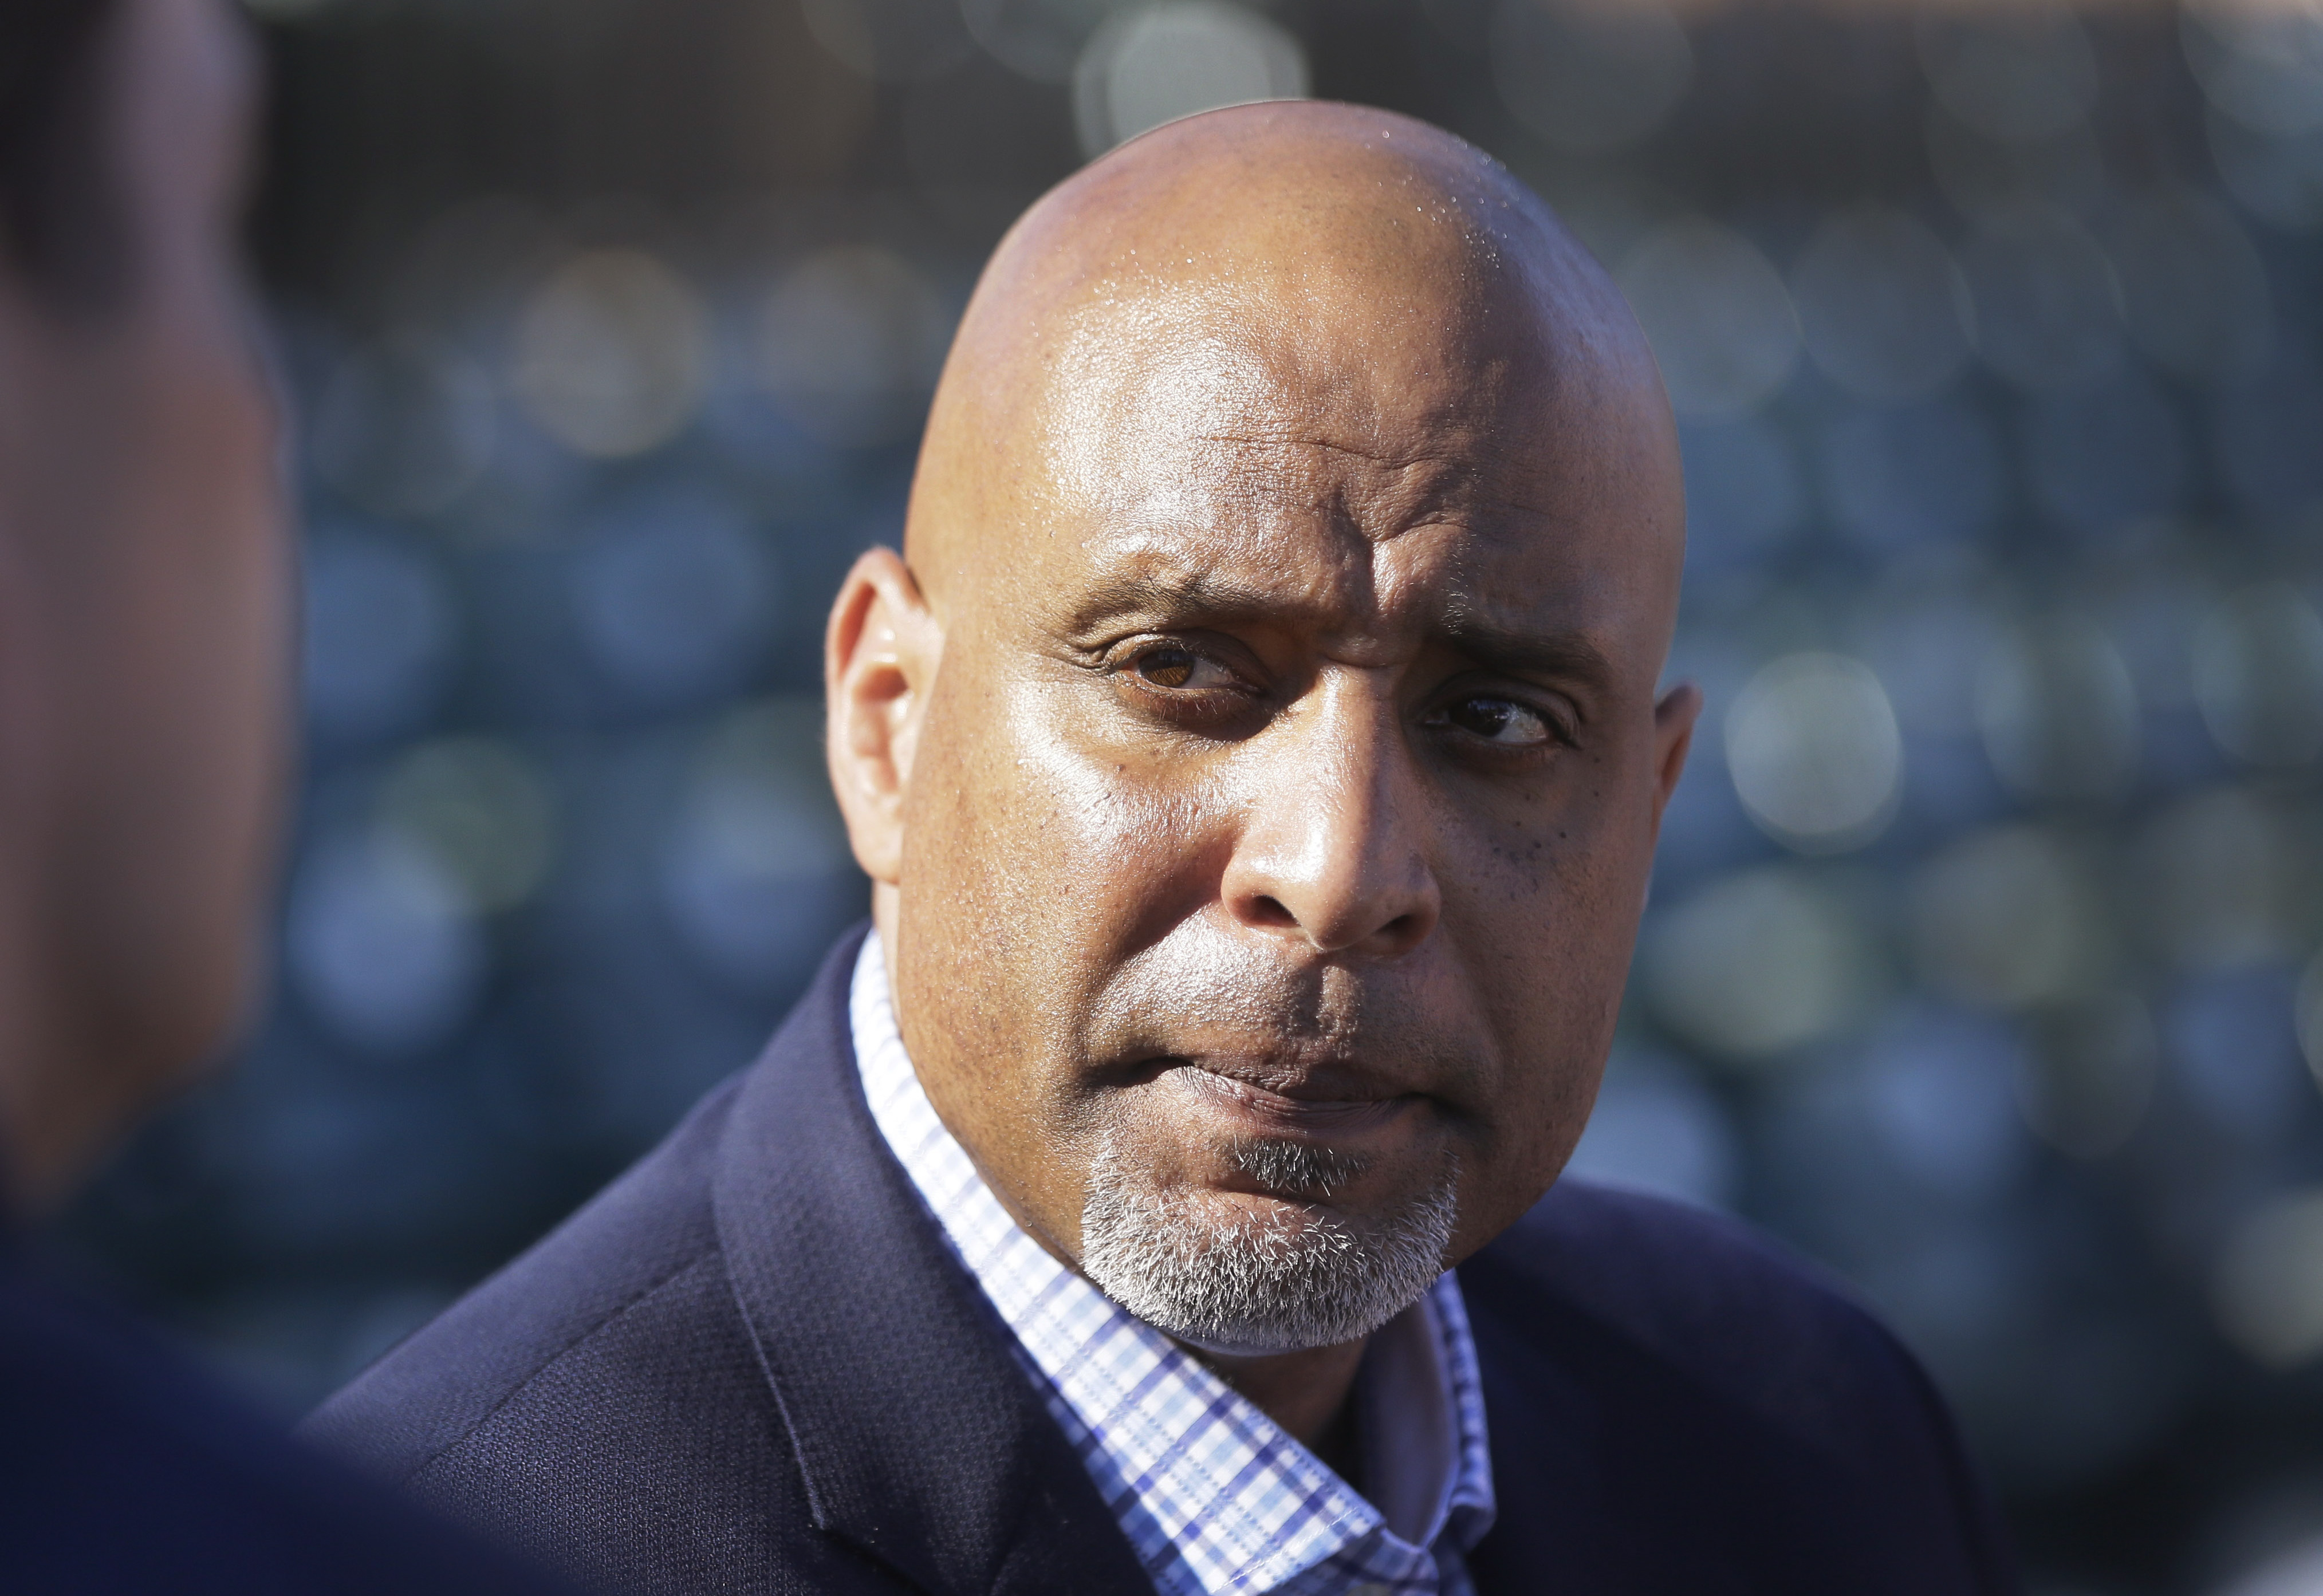 FILE - In this March 17, 2015, file photo, Tony Clark, executive director of the baseball players' union, talks to reporters before a spring training baseball game between the Detroit Tigers and the Washington Nationals in Lakeland, Fla. Major League Base